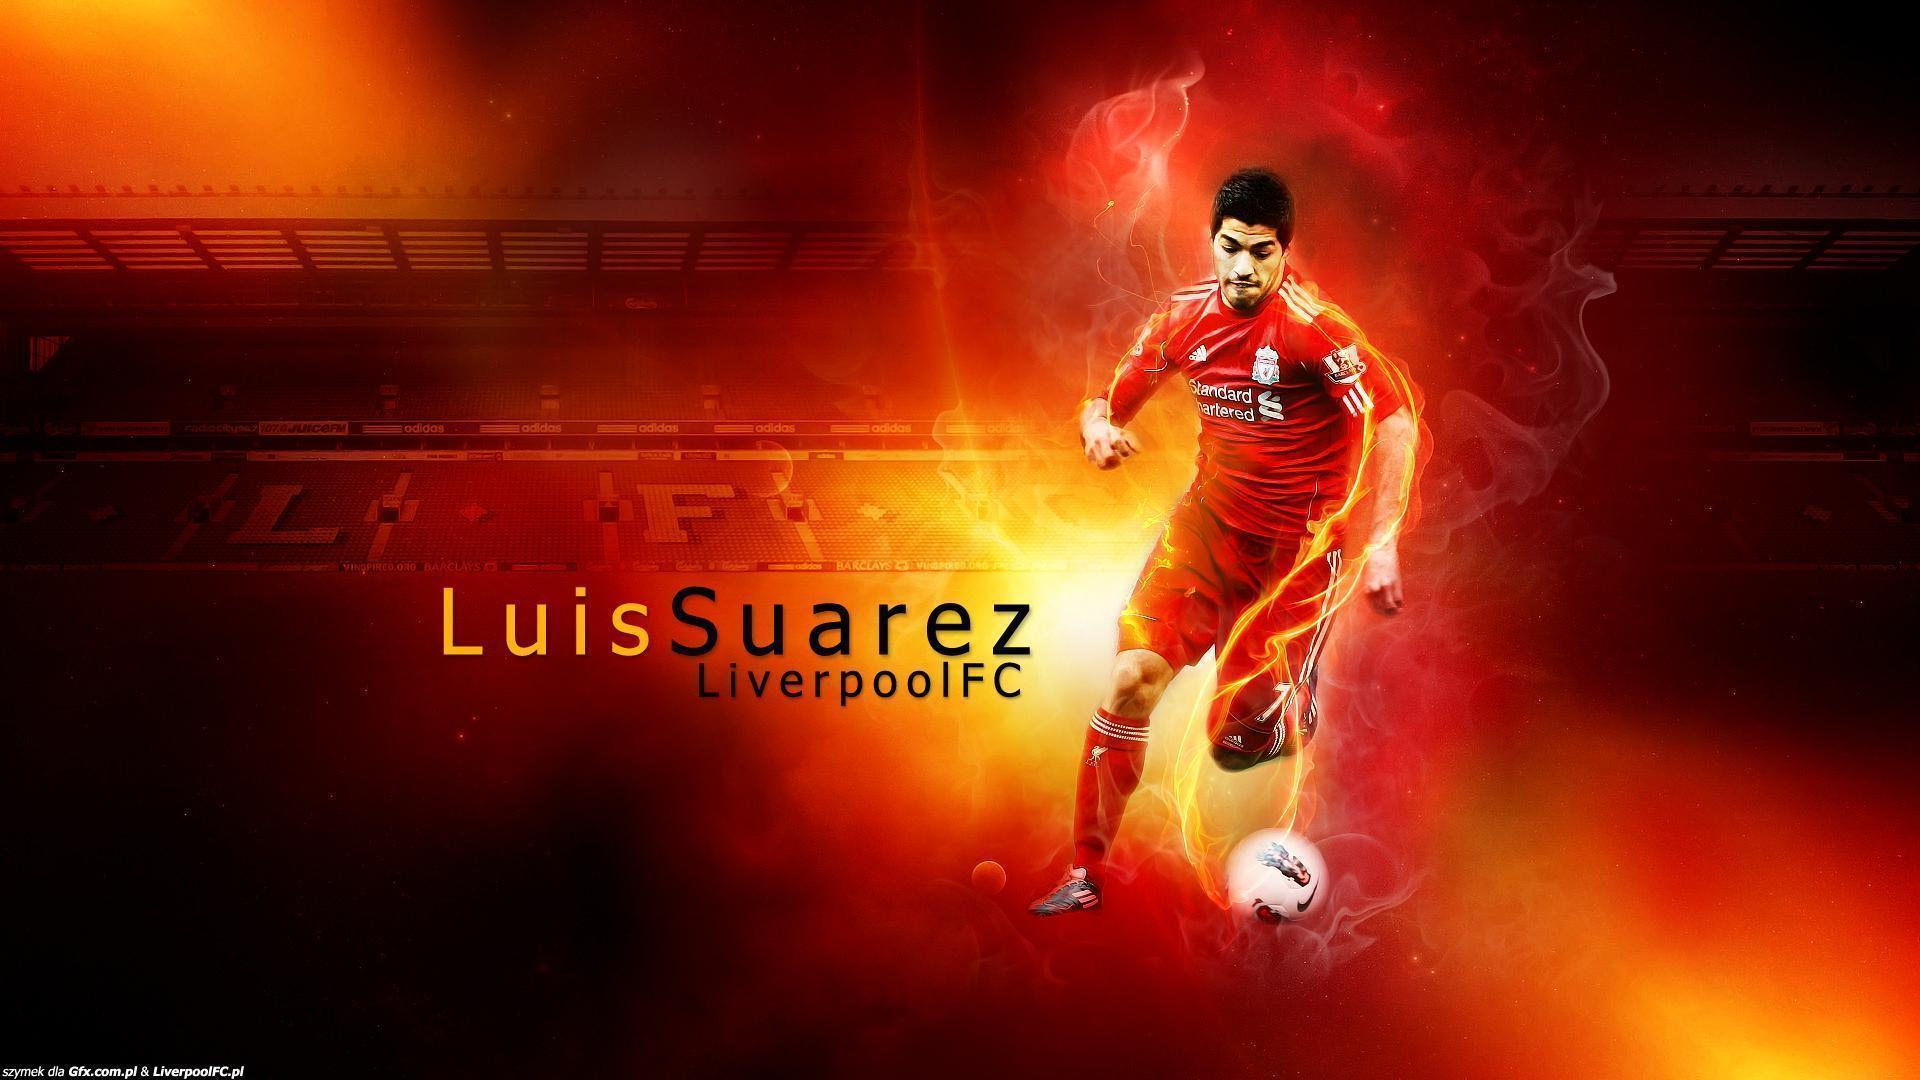 Luis suarez wallpapers wallpaper cave - Suarez liverpool wallpaper ...